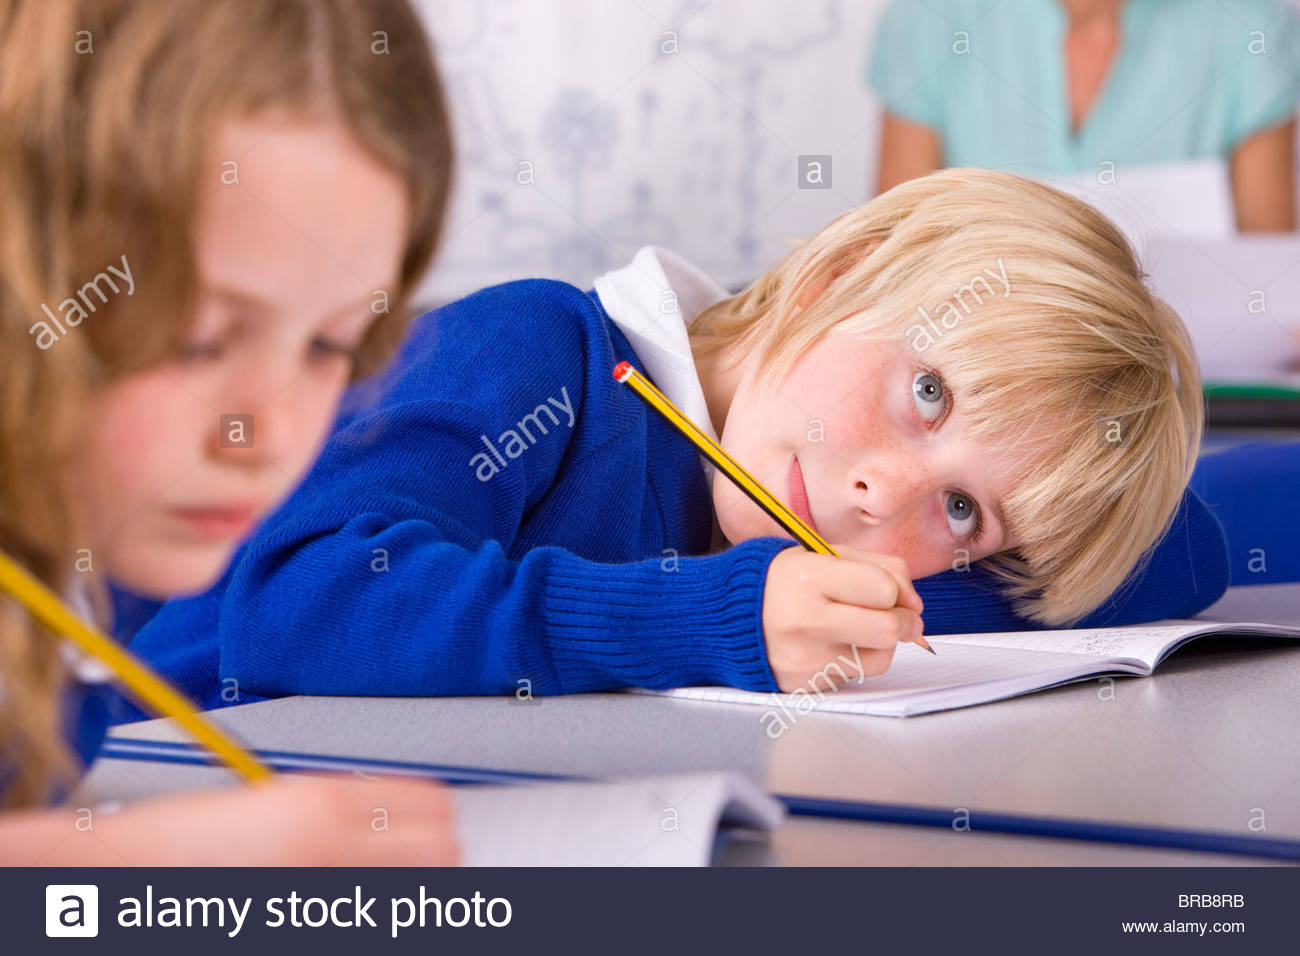 School boy thinking and writing in workbook - Stock Image